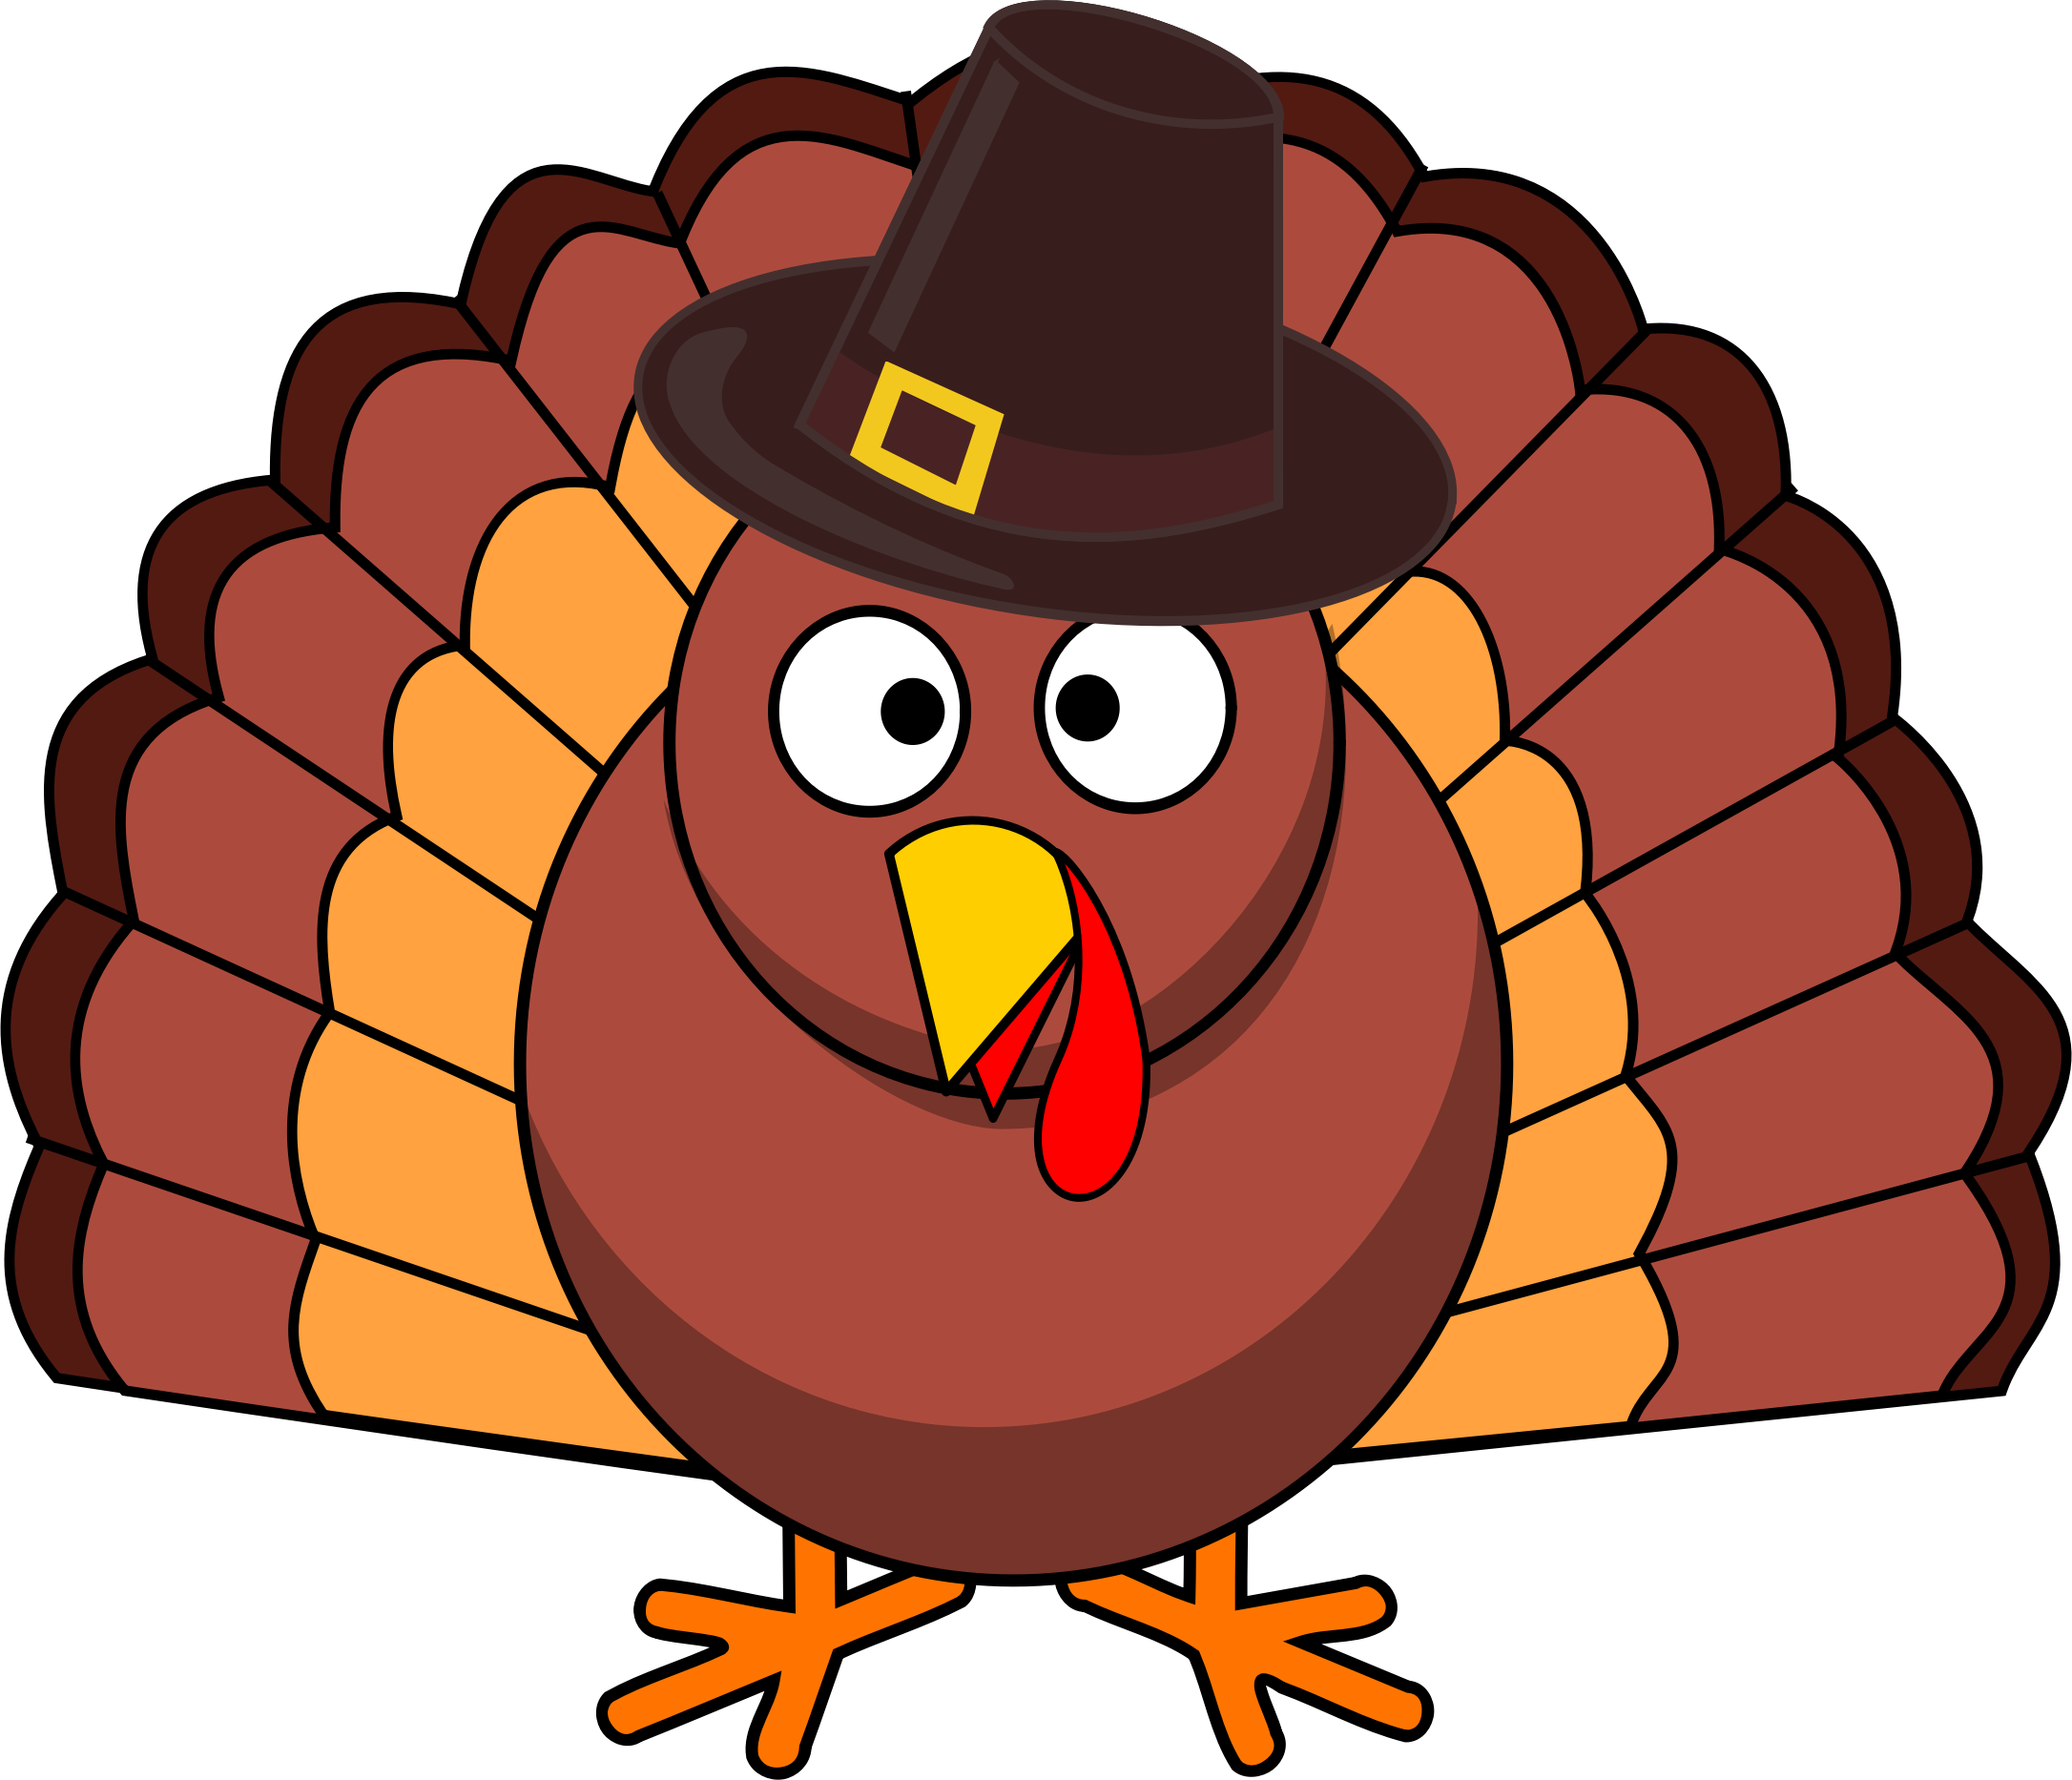 Turkey on limb clipart clip library download Thanksgiving Turkey Drawing at GetDrawings.com | Free for personal ... clip library download